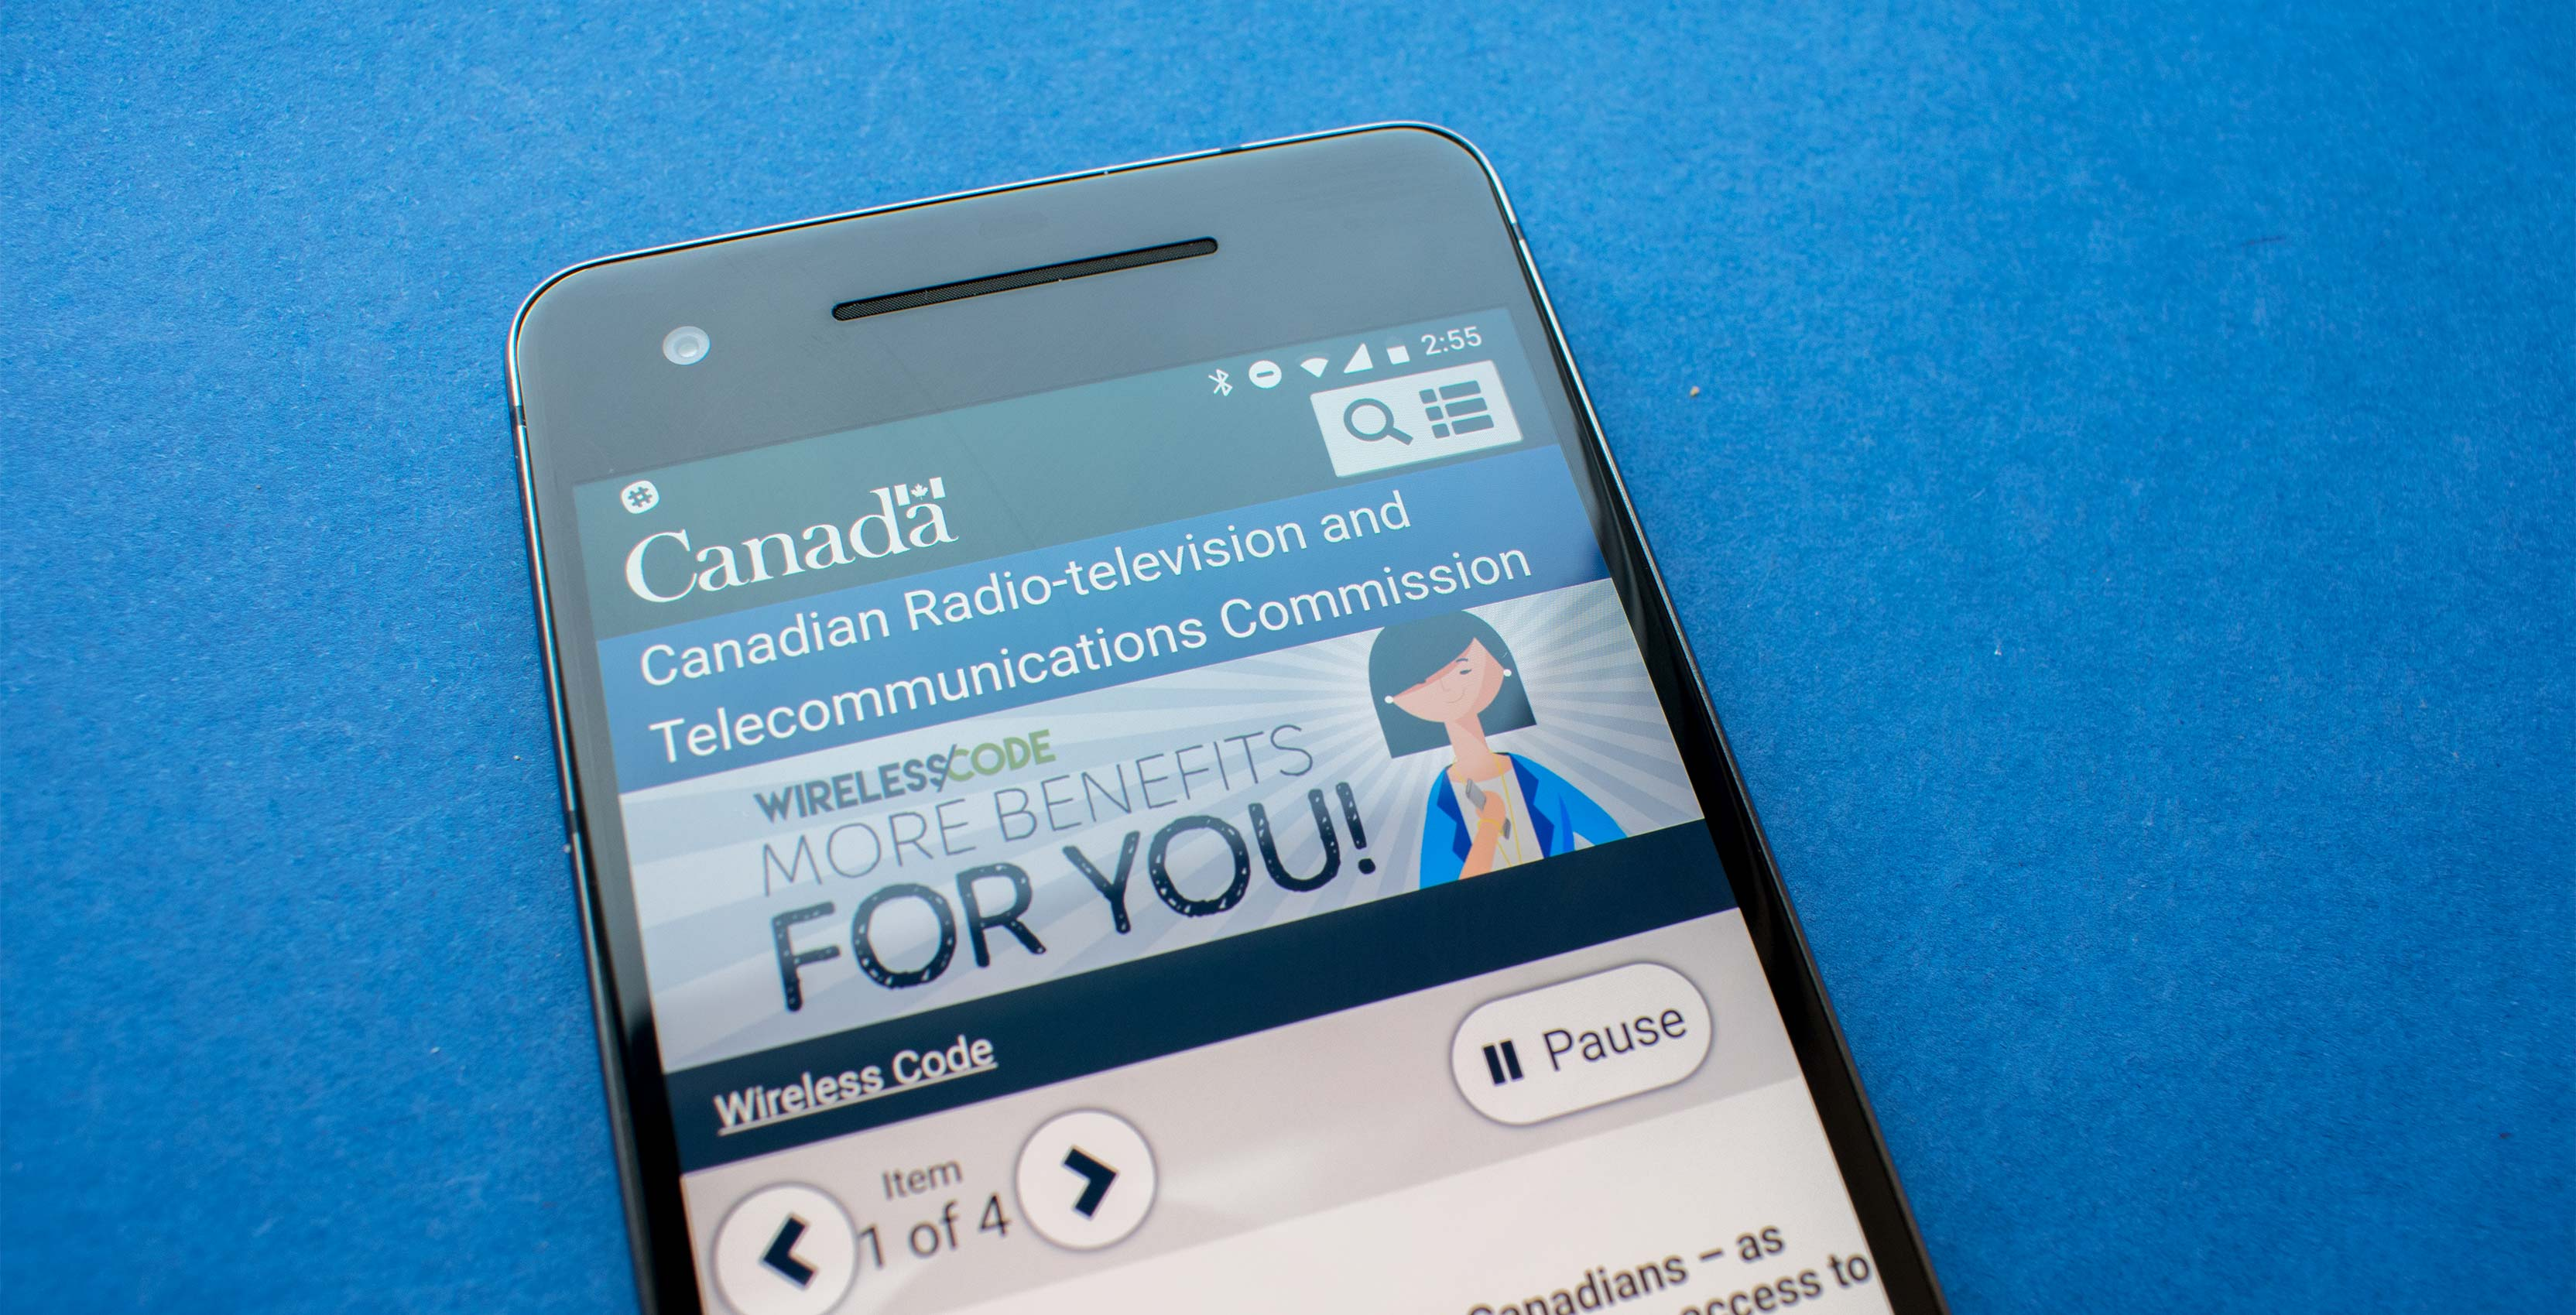 Crtc Closes The Door On Wi Fi First Mvnos Launches New Low Cost Am Radio Canadian Television And Telecommunications Commission Has Announced That It Will Launch A Public Process To Determine How Precisely